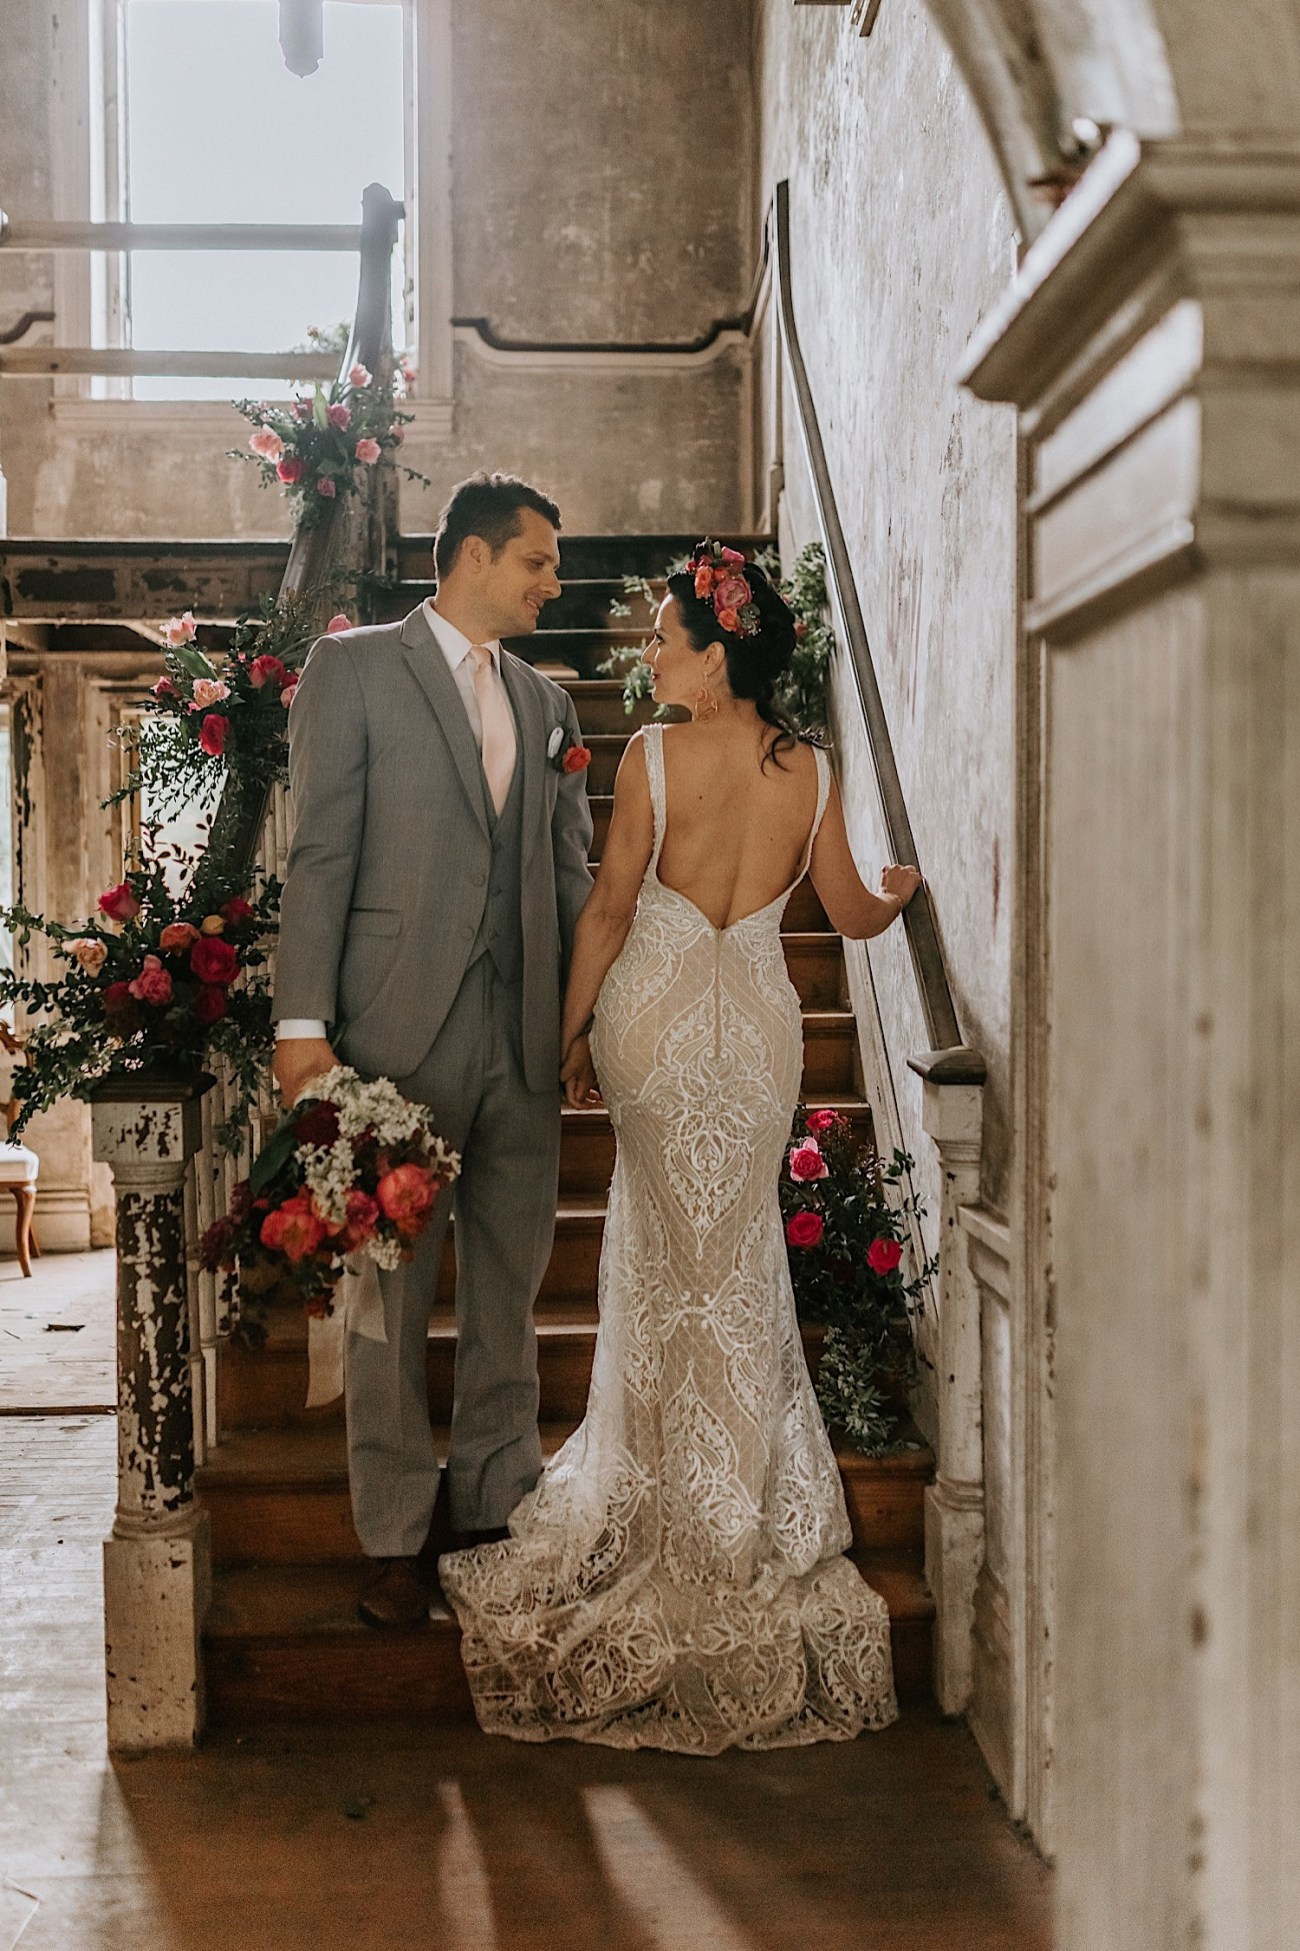 Barnsley Manor Wedding Philadelphia Wedding Photographer Hacienda Wedding Inspiration 32